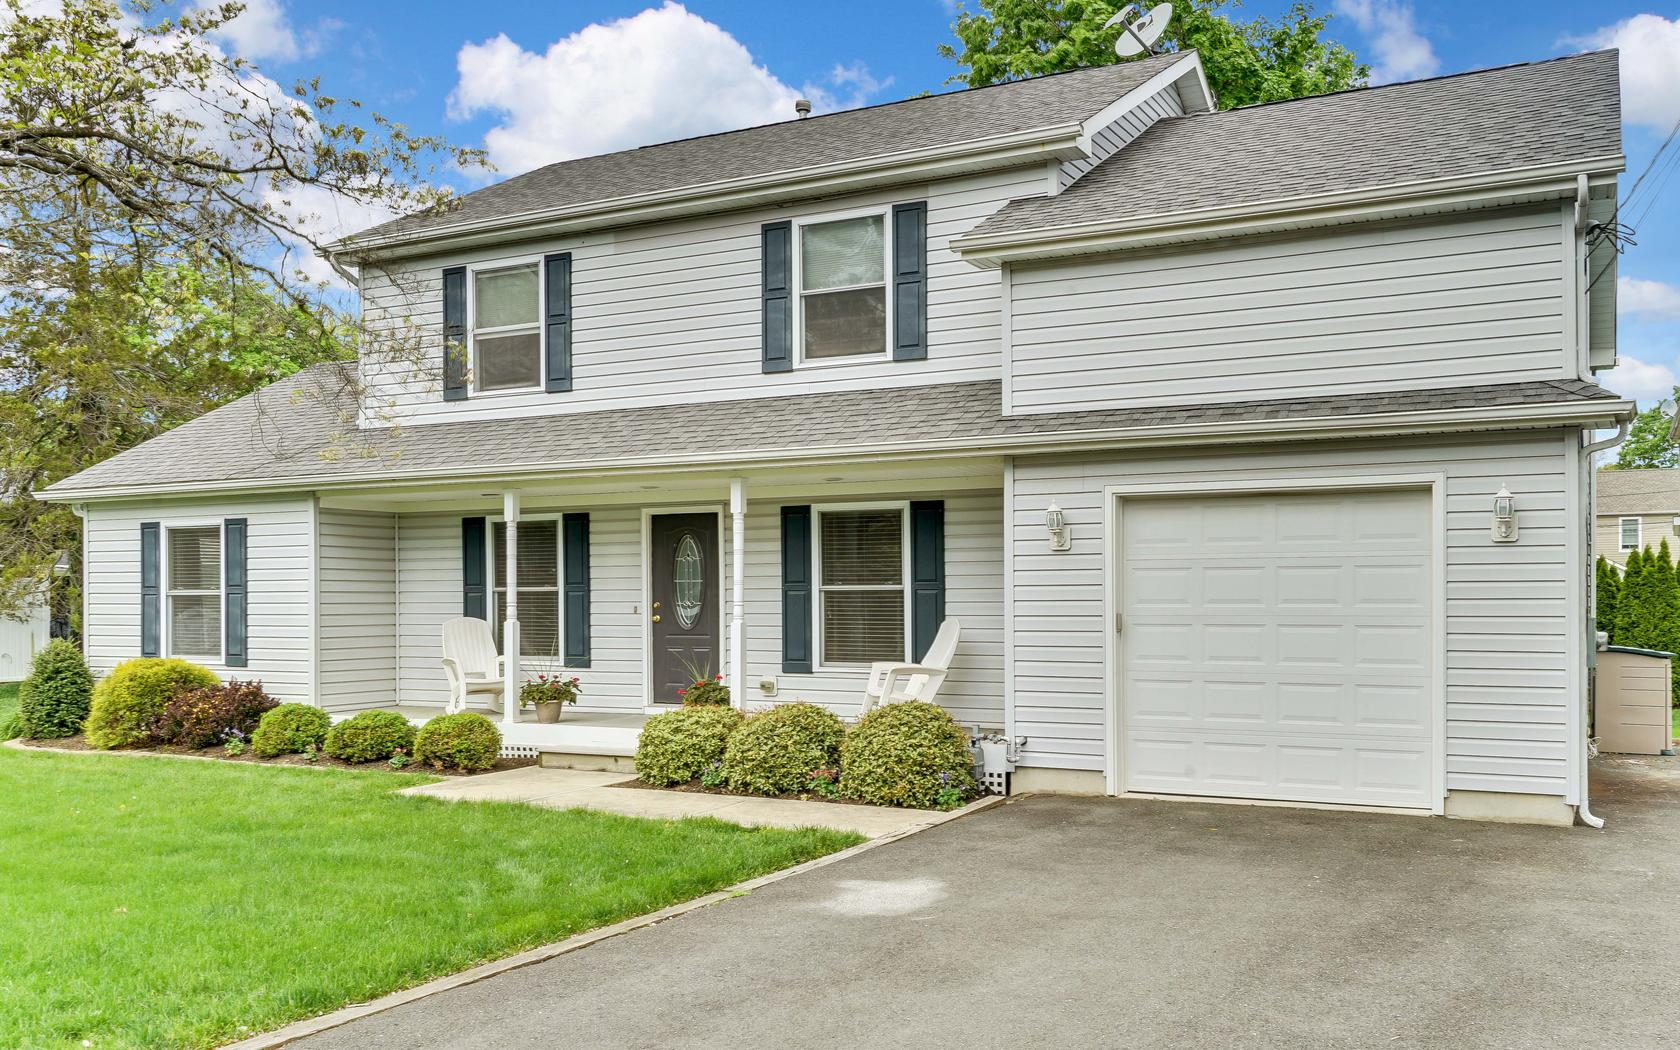 Single Family Home for Sale at Move In Ready 1710 Forest Street Belmar, New Jersey 07719 United States